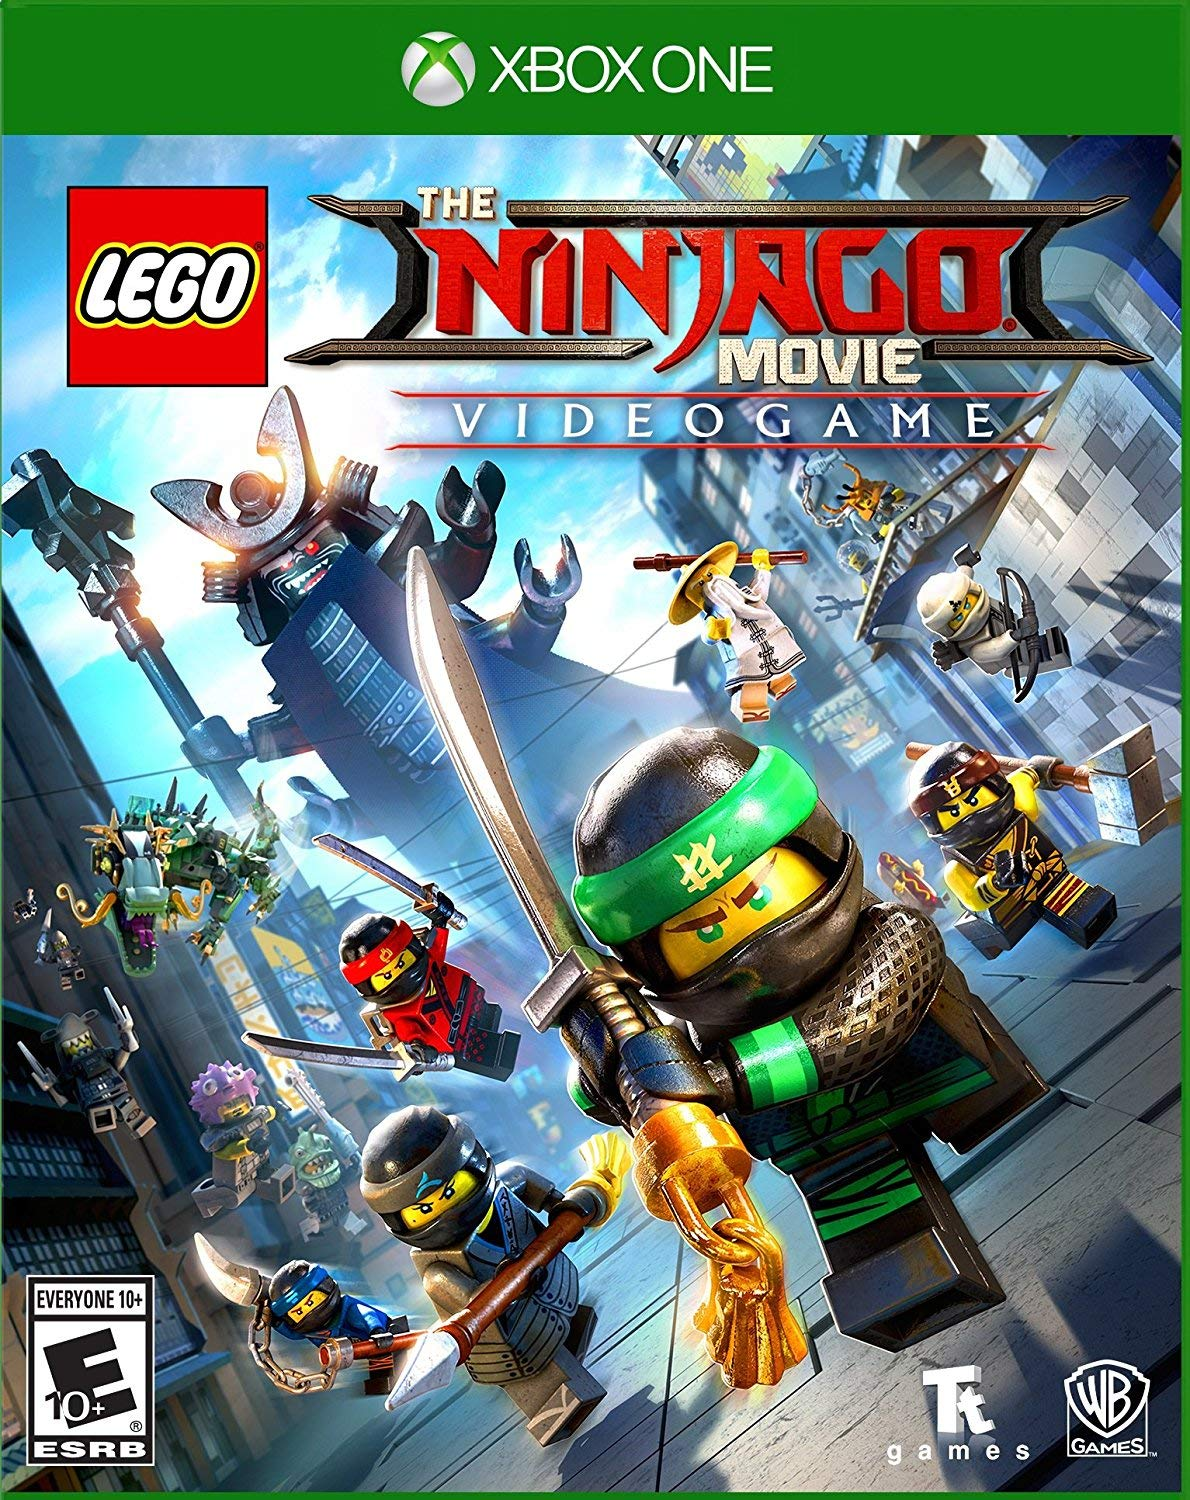 The Lego Ninjago Movie Videogame: Amazon.es: Videojuegos